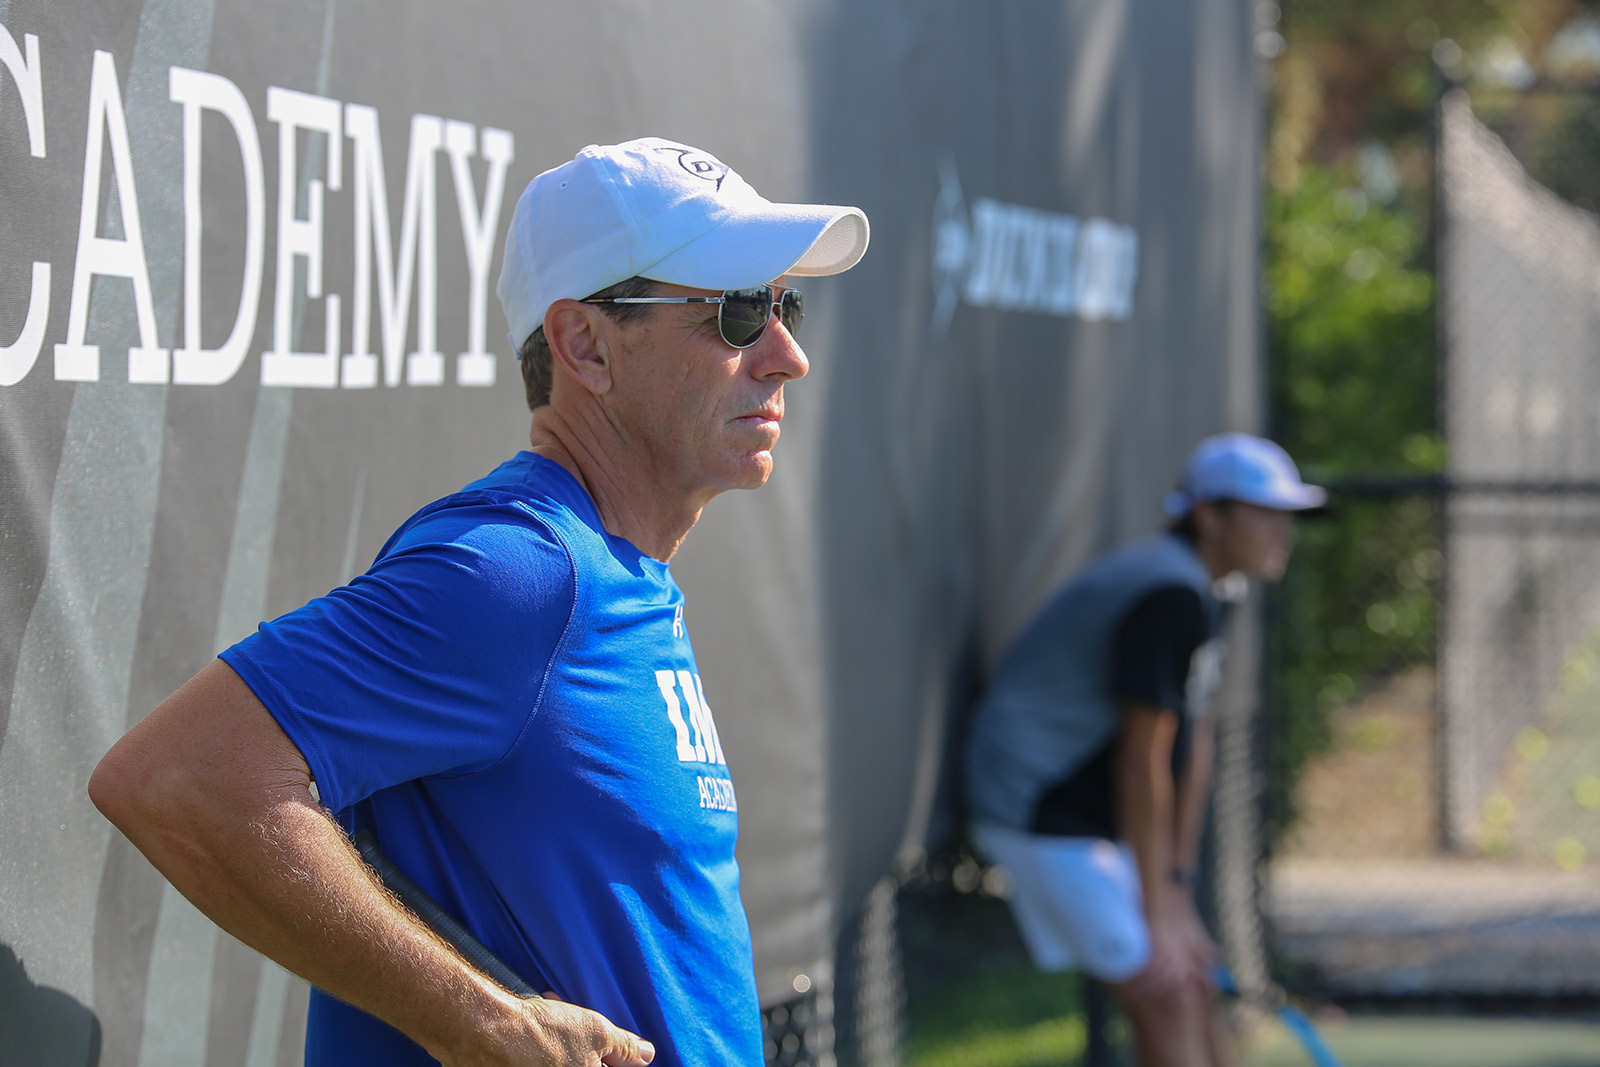 jimmy arias watches tennis practice from IMG Academy courts